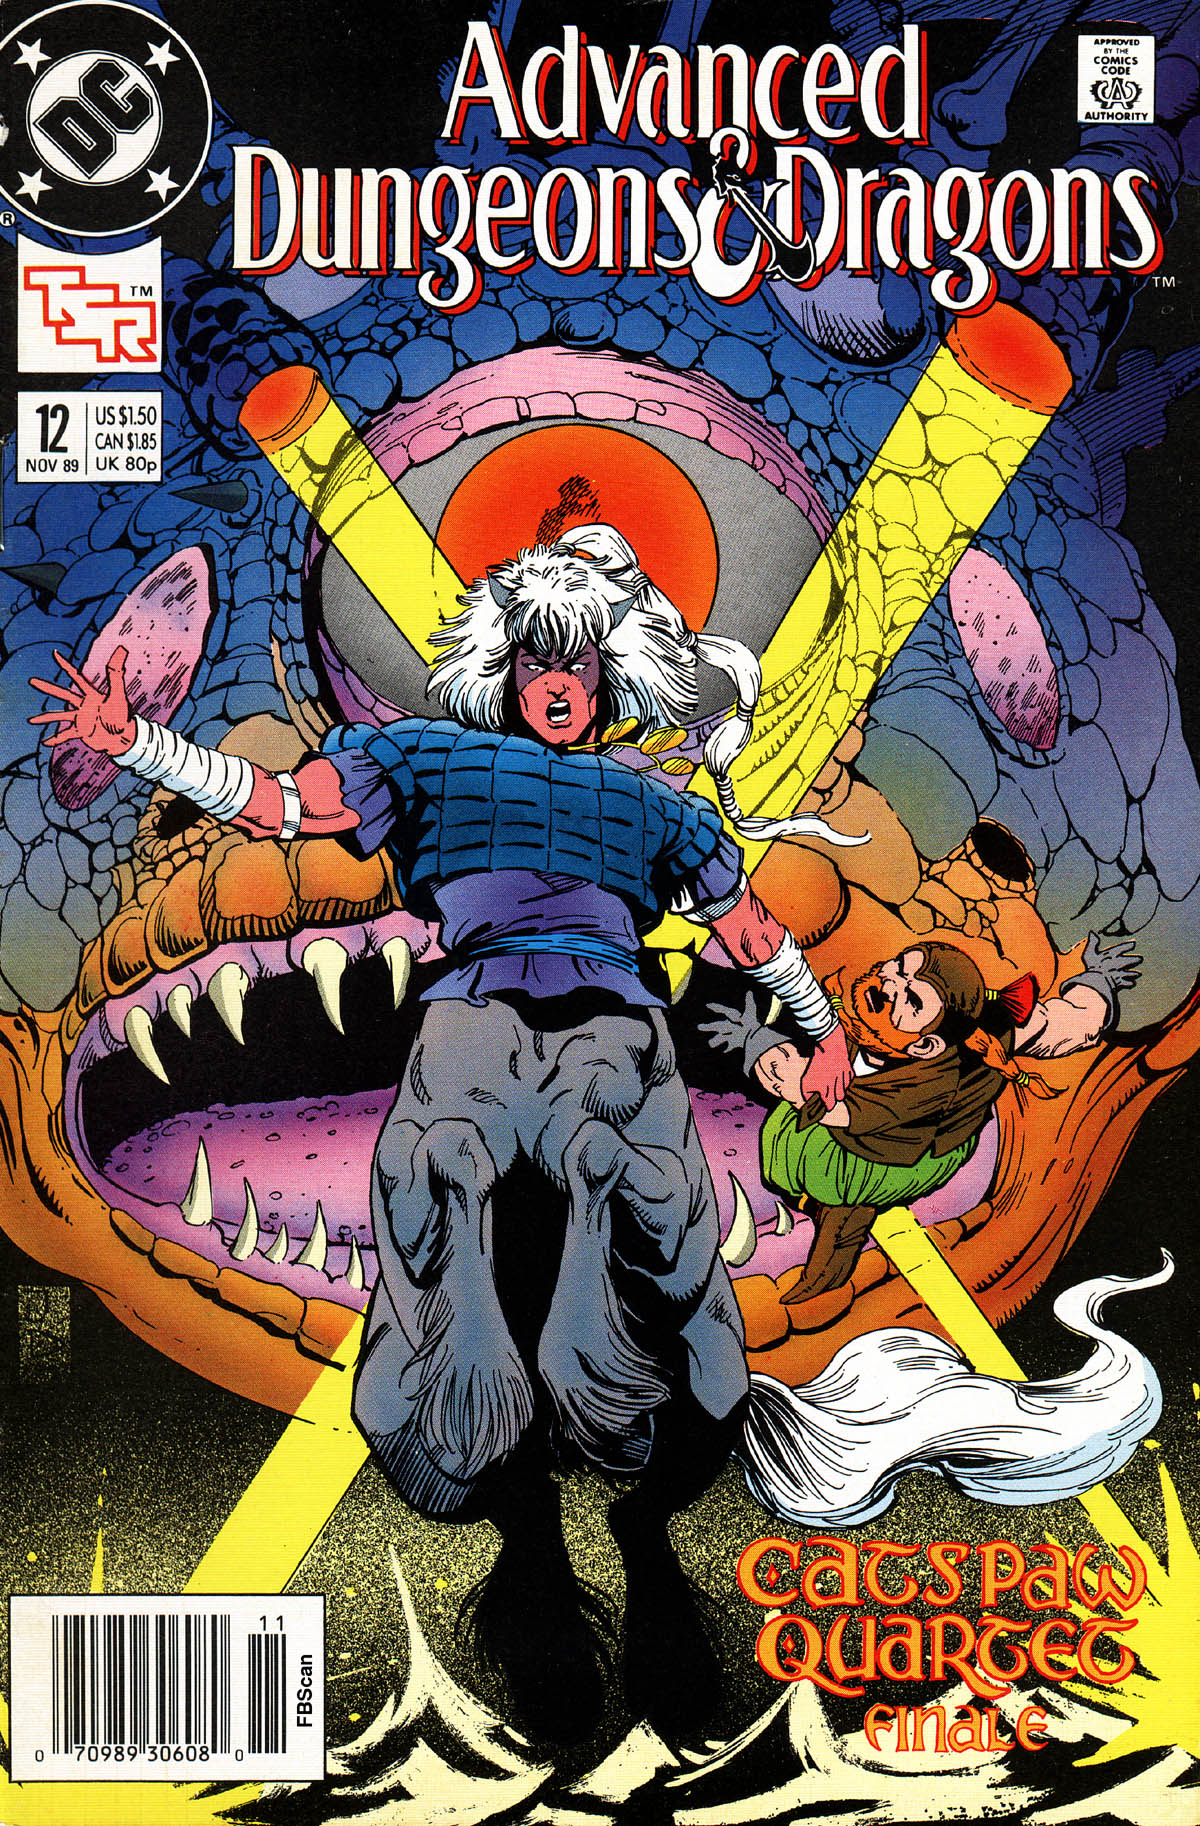 Read online Advanced Dungeons & Dragons comic -  Issue #12 - 1